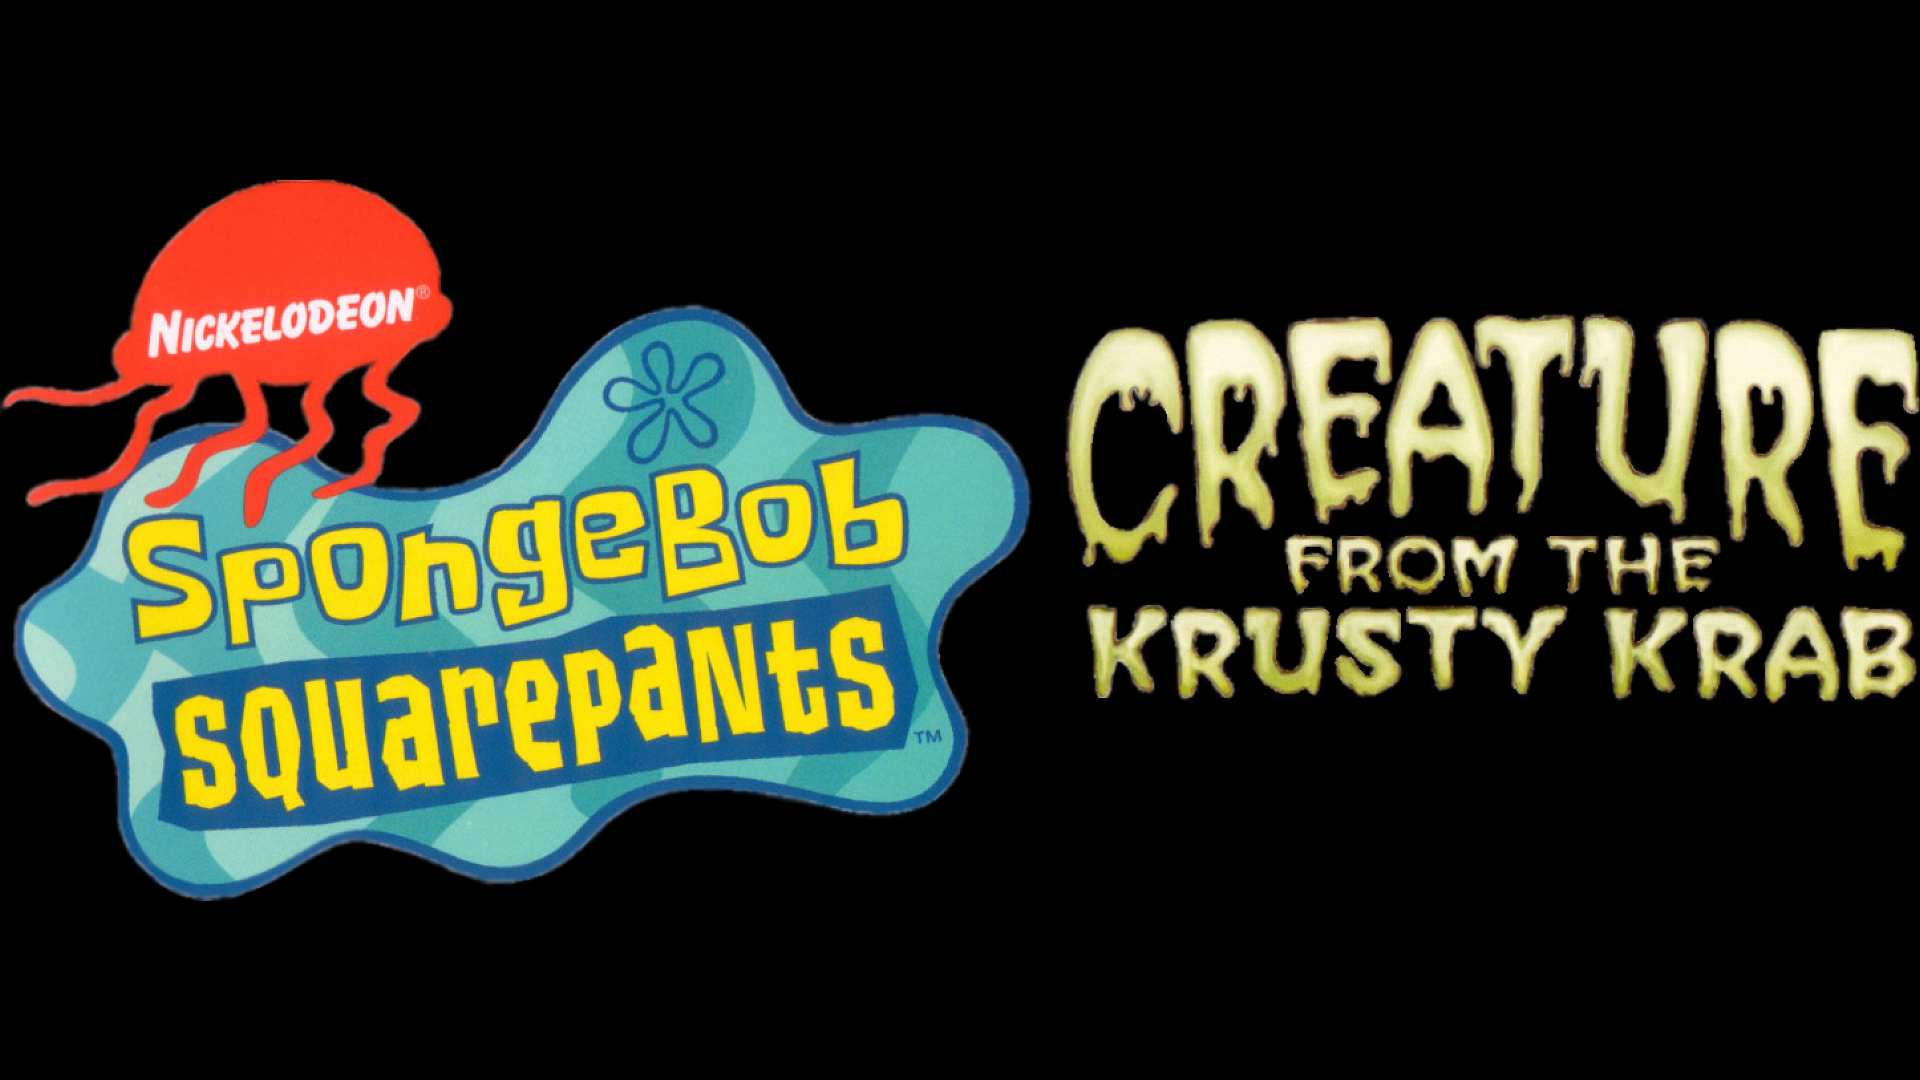 SpongeBob SquarePants: Creature from the Krusty Krab Logo